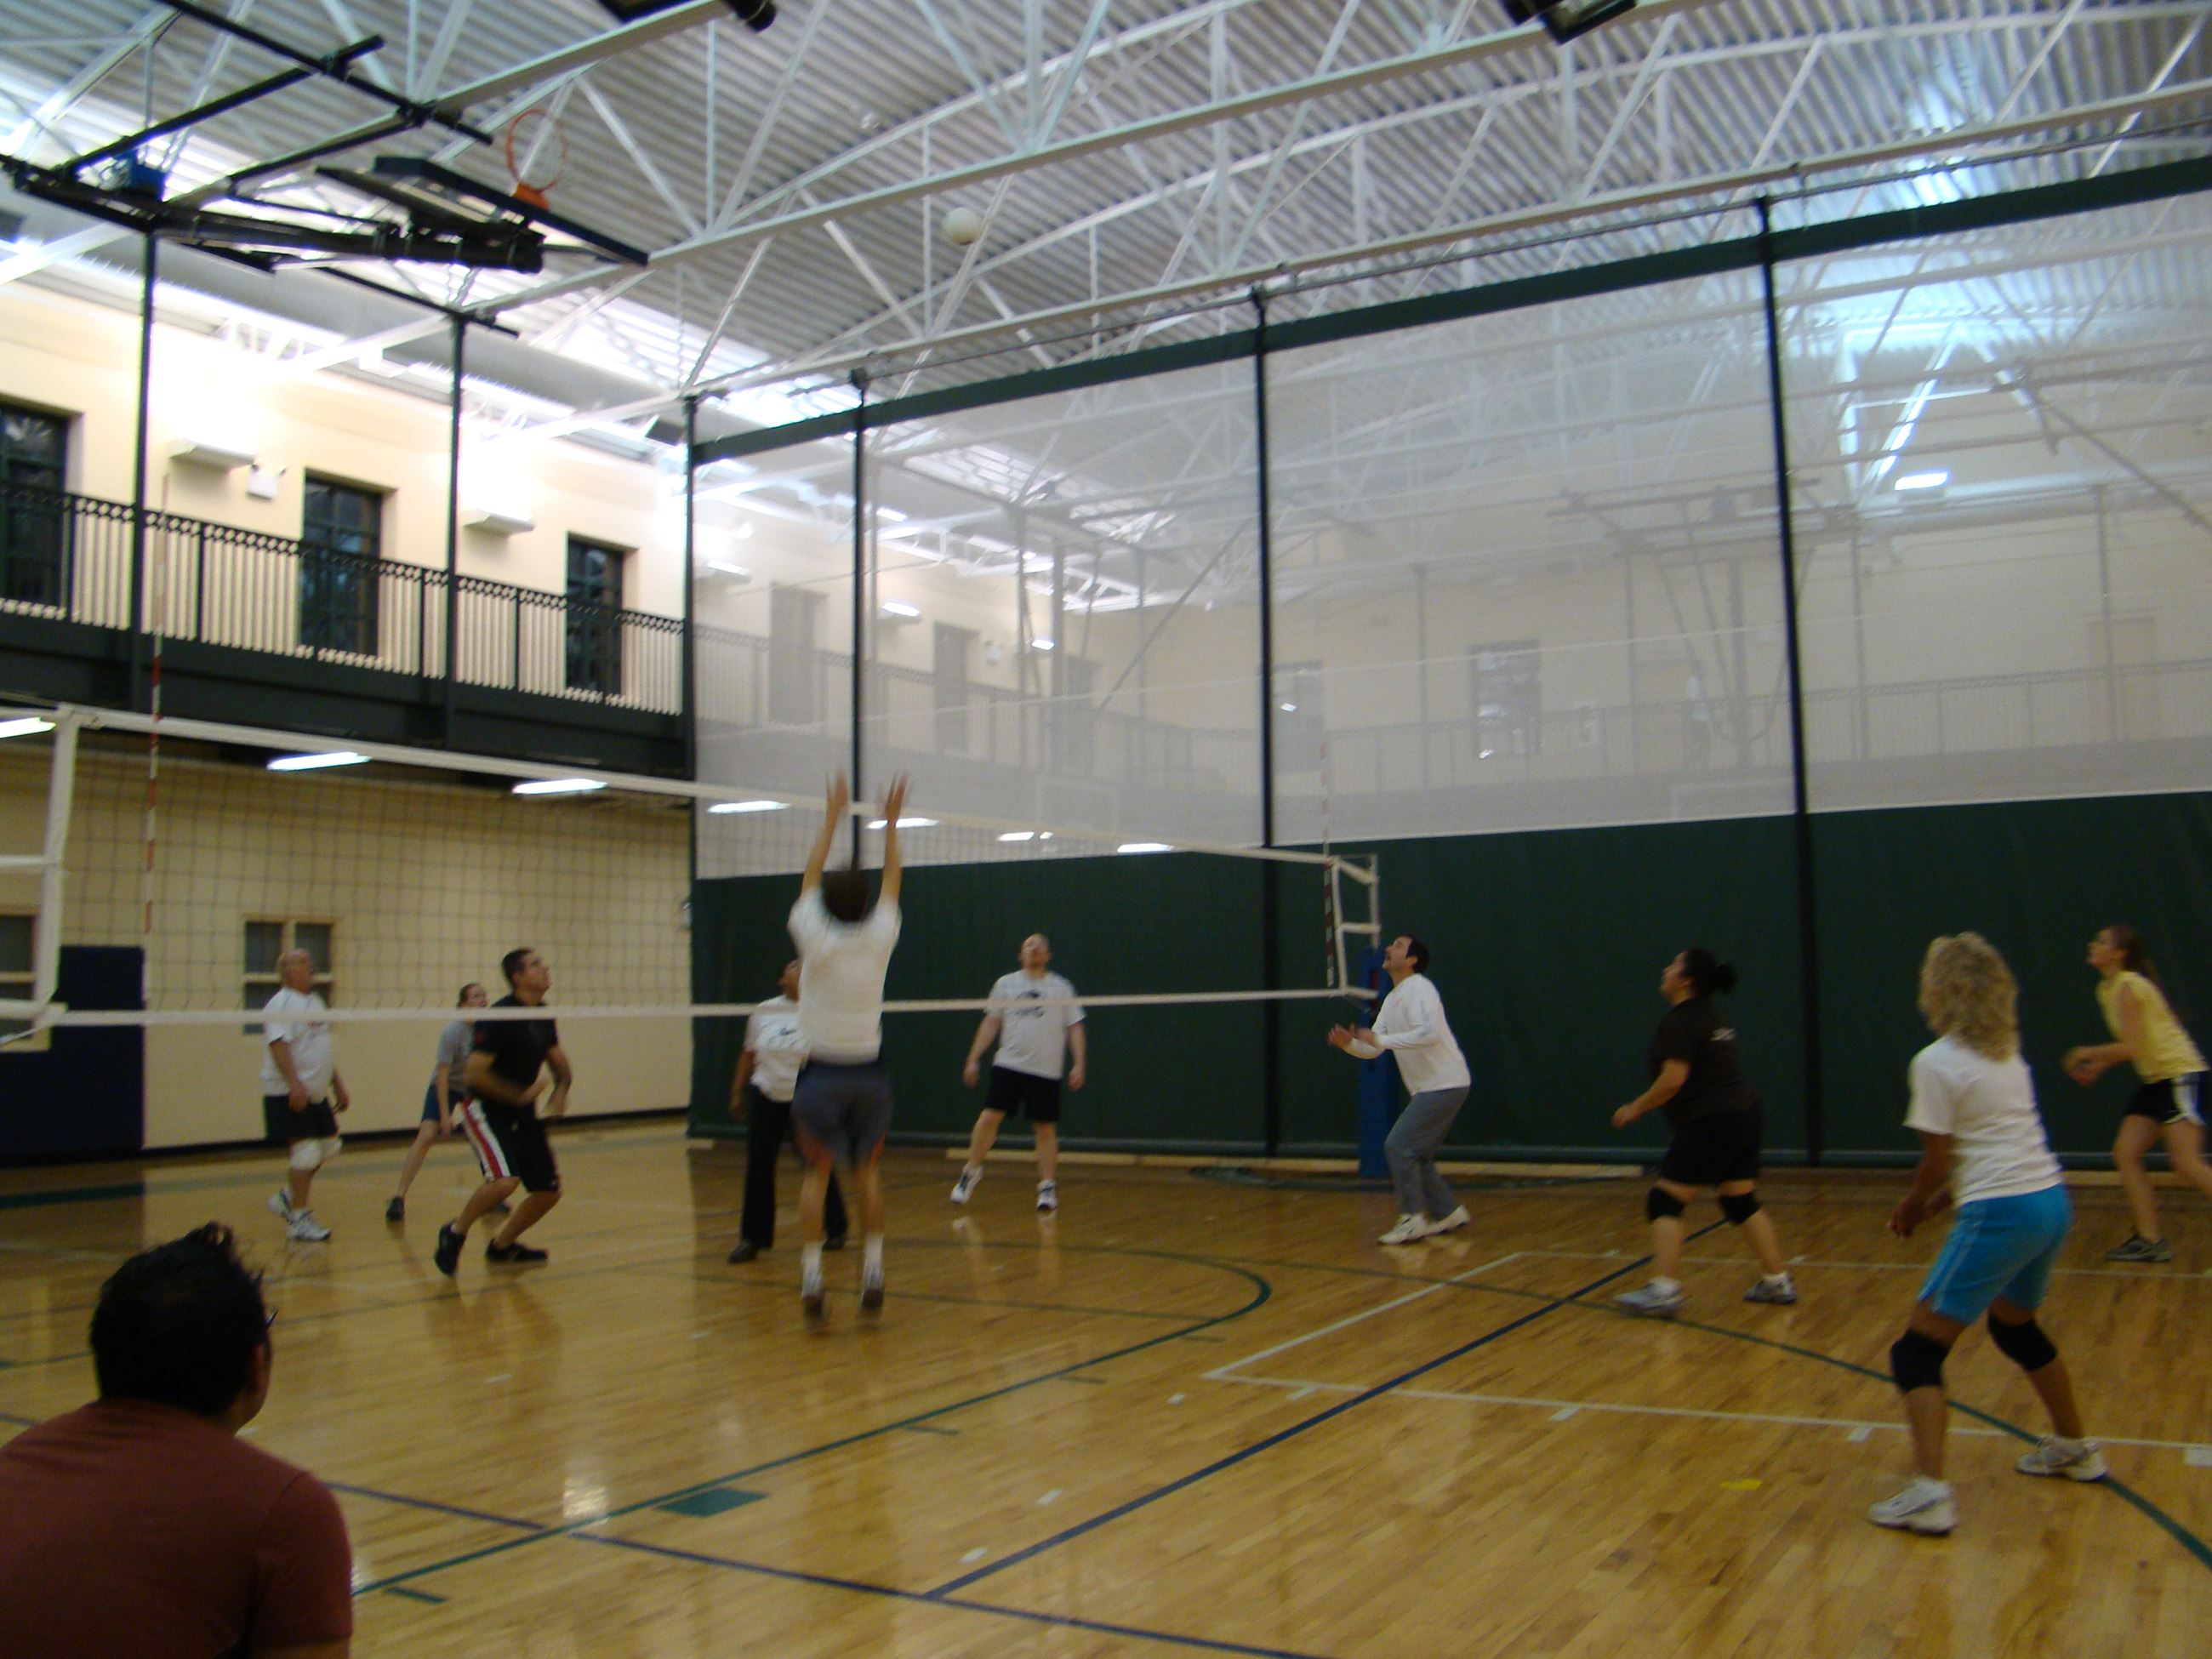 A volleyball game in progress in the Recreation Center gymnasium.